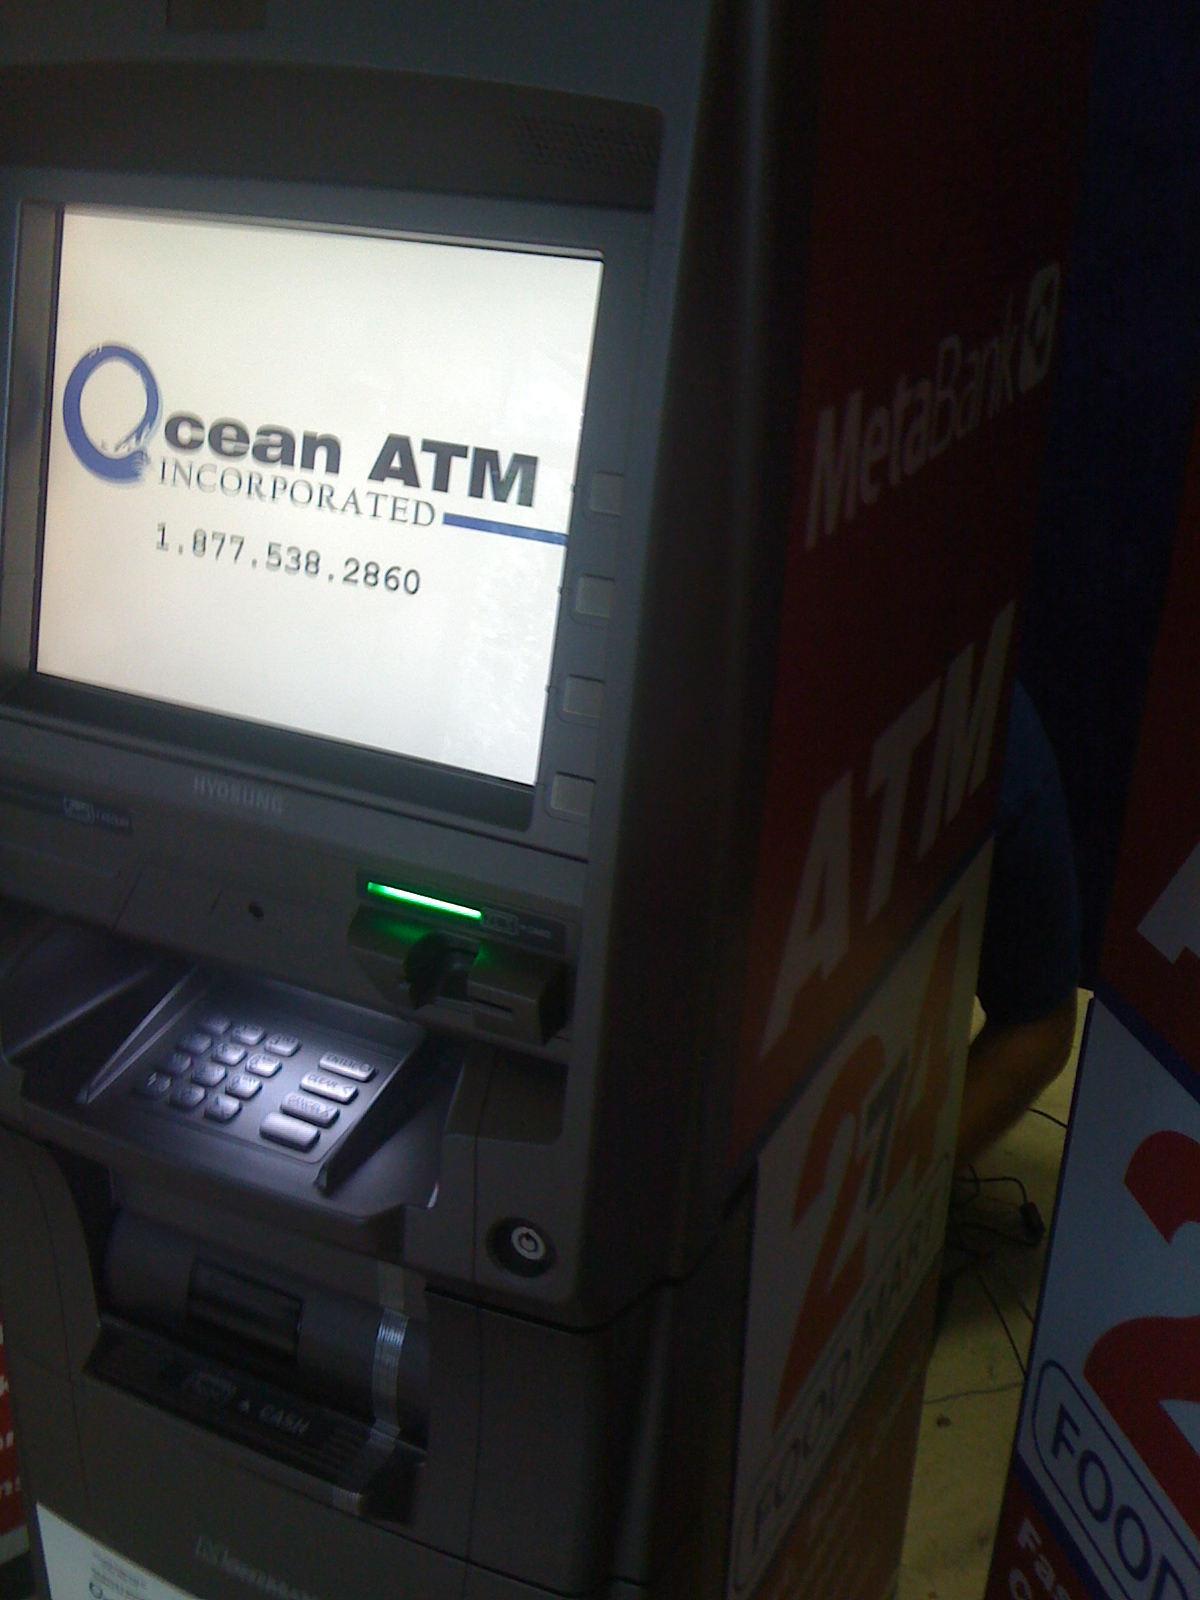 Ocean ATM Incorporated